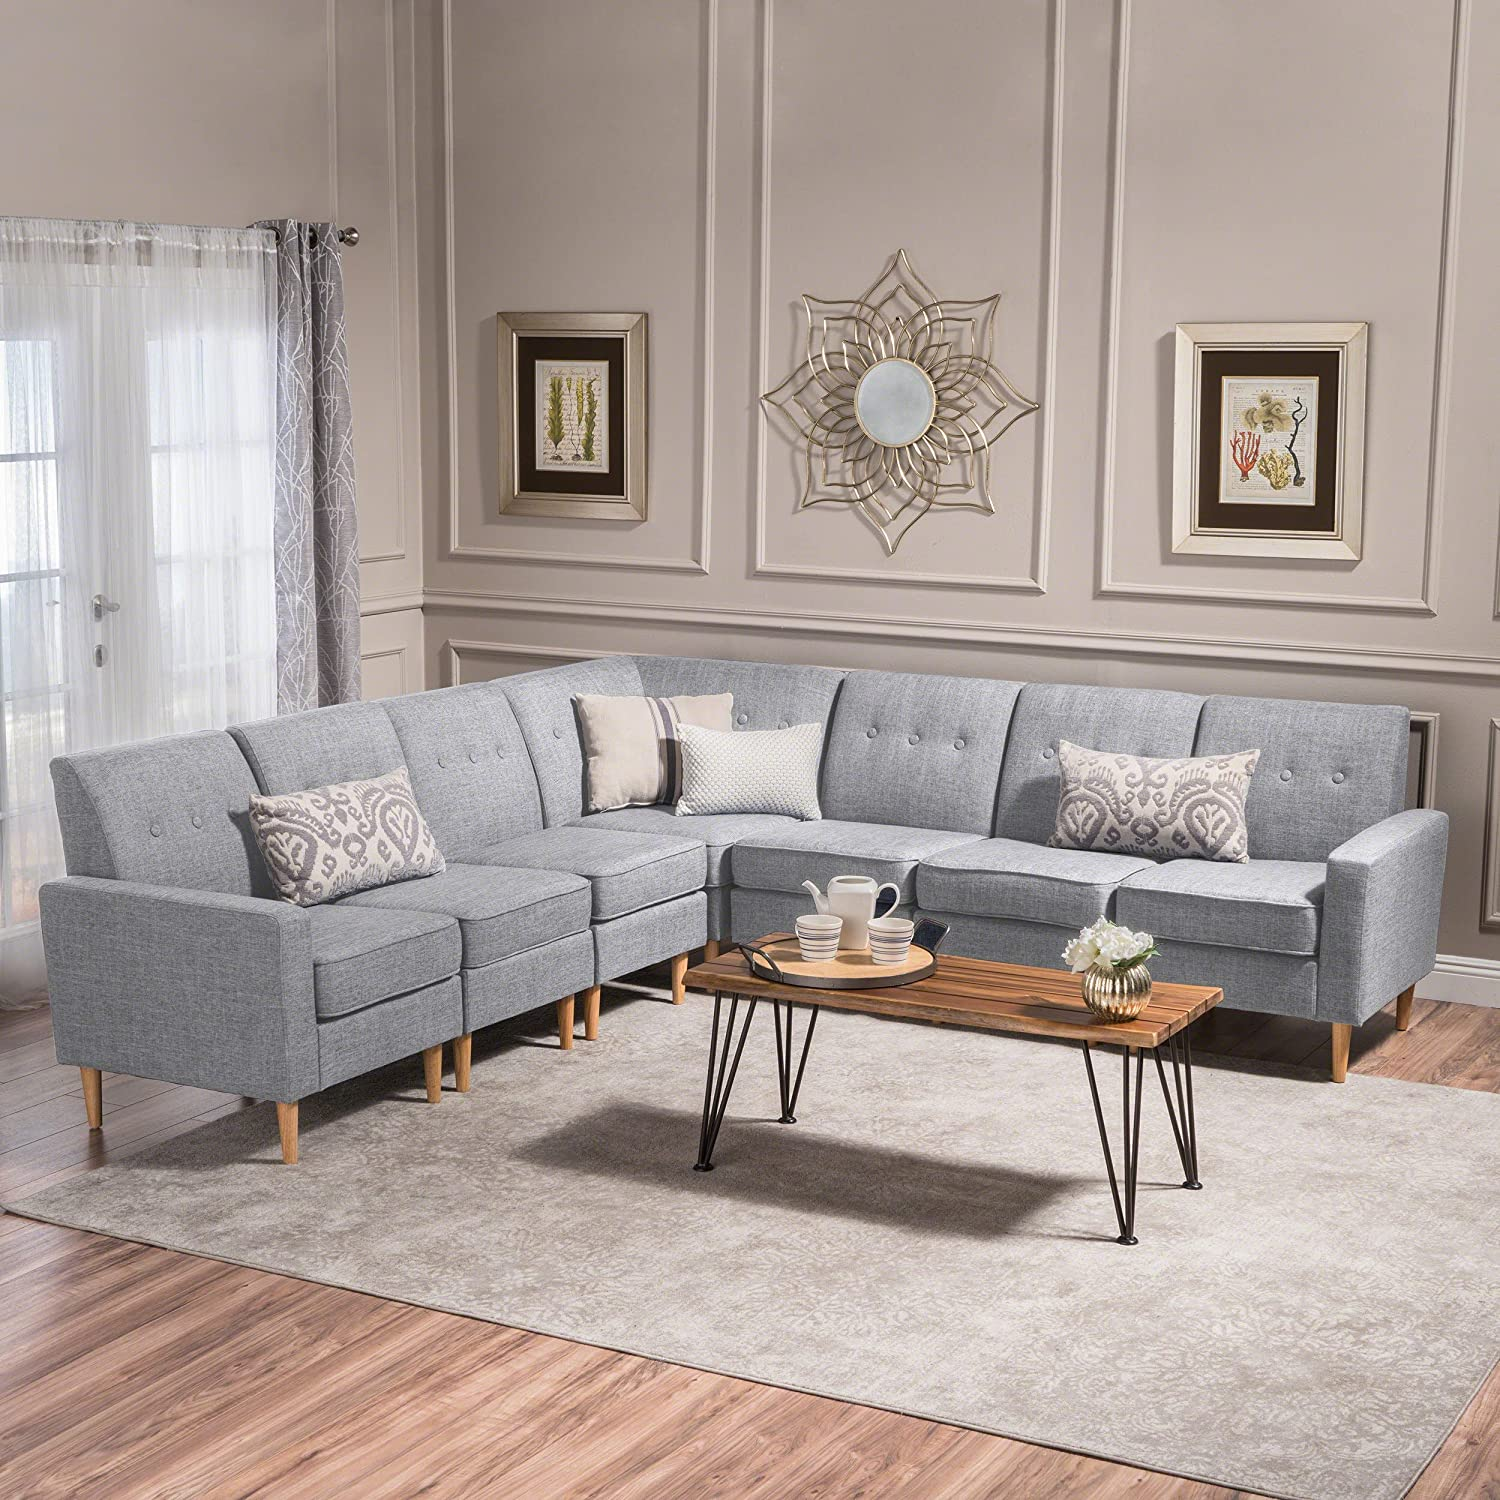 Stupendous Great Deal Furniture Samuel Mid Century Modern 7 Piece Light Grey Tweed Fabric Sectional Sofa Set Gamerscity Chair Design For Home Gamerscityorg